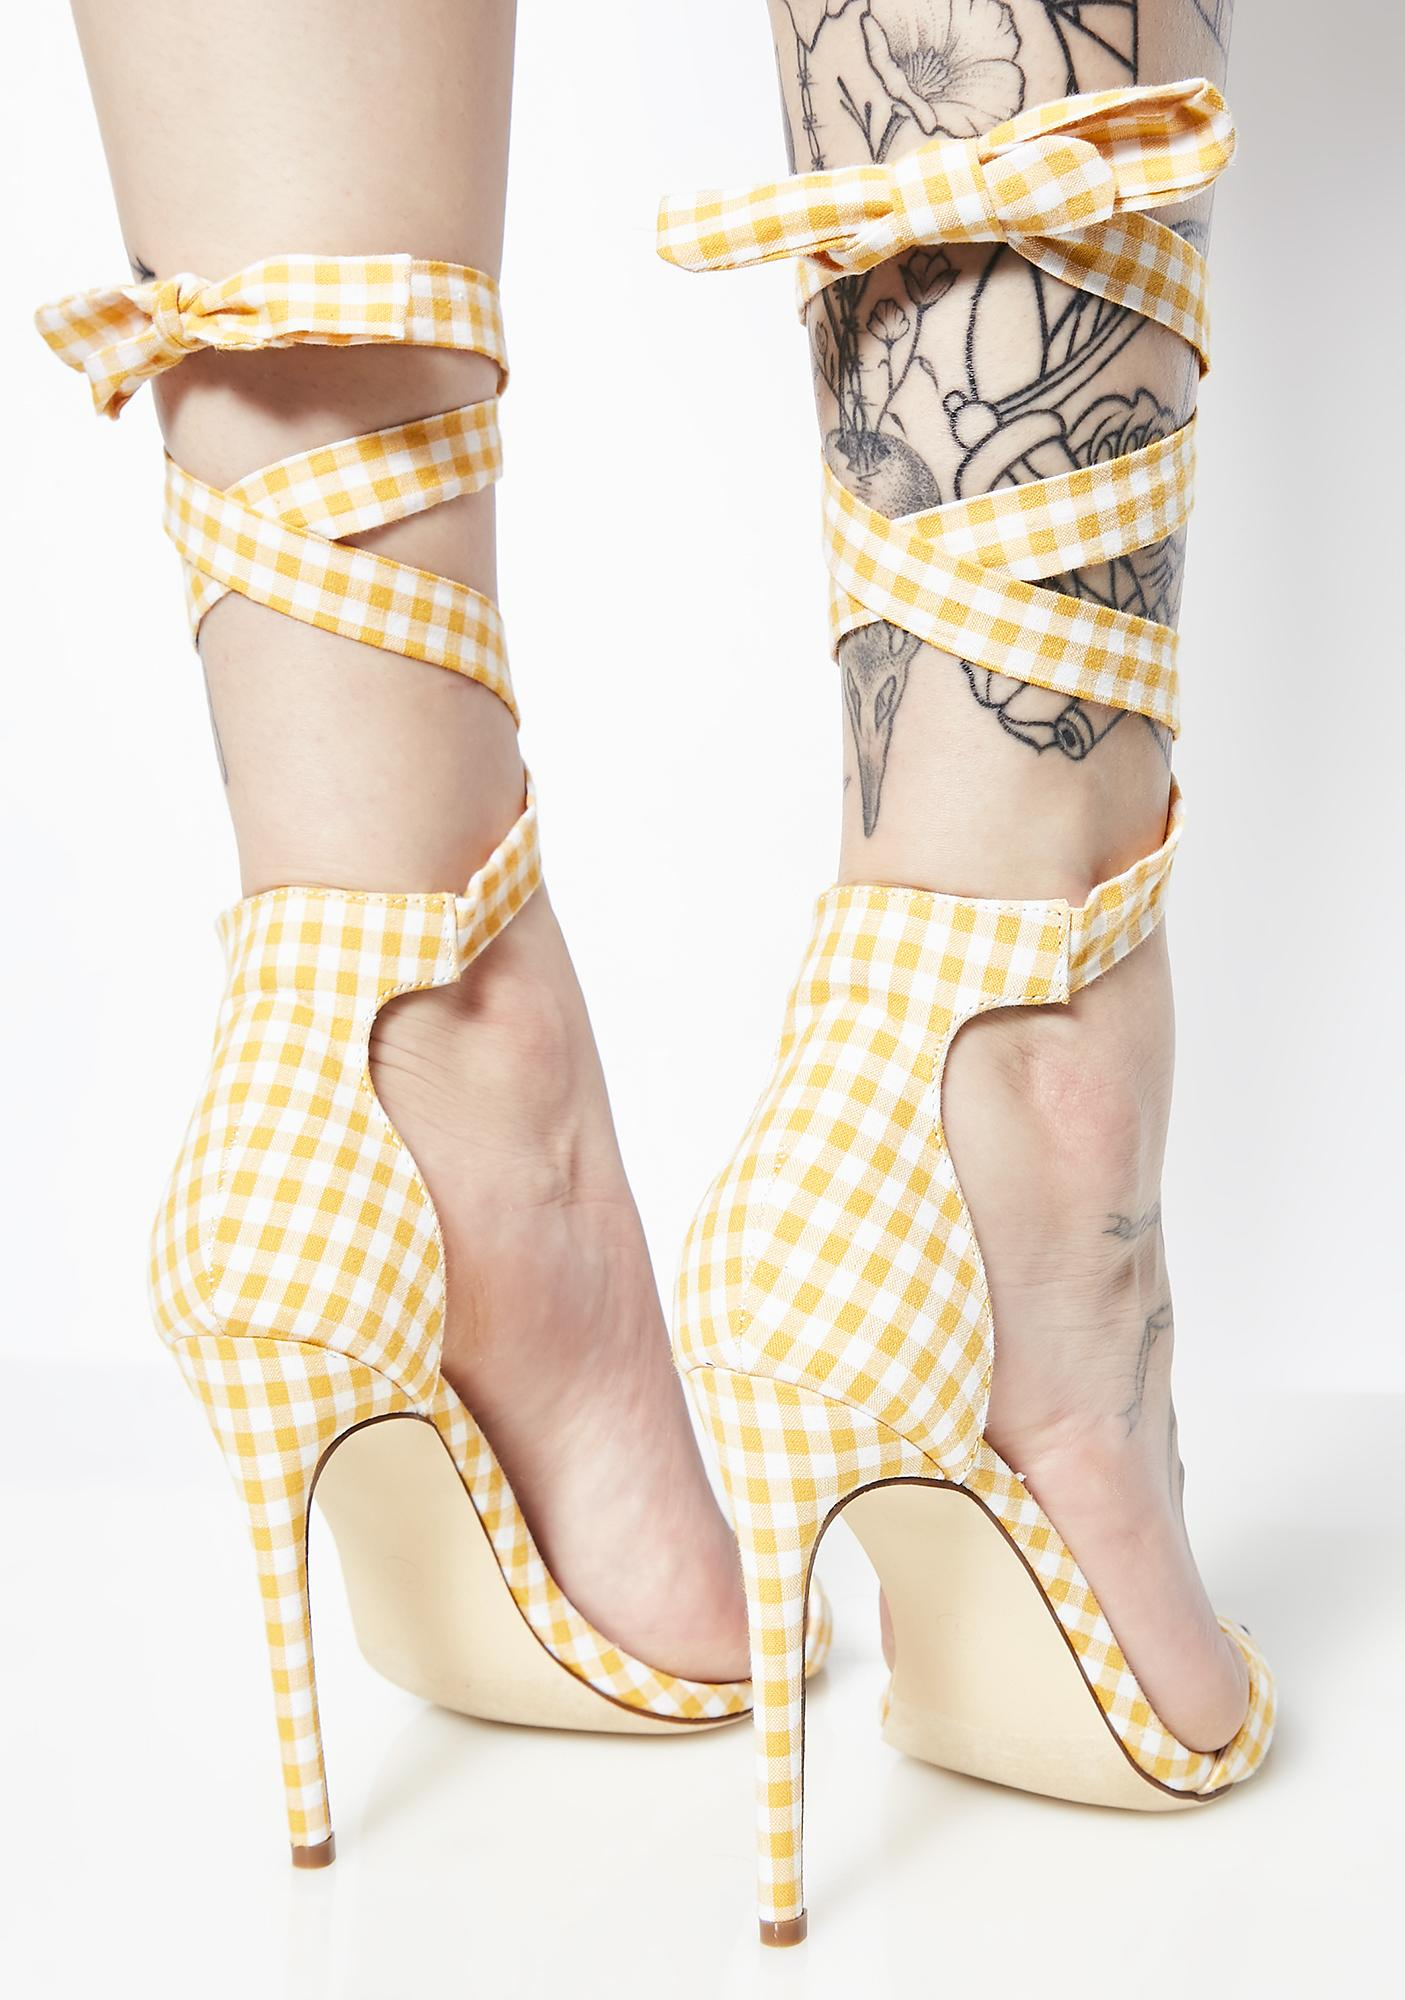 Badly Behaved Gingham Heels